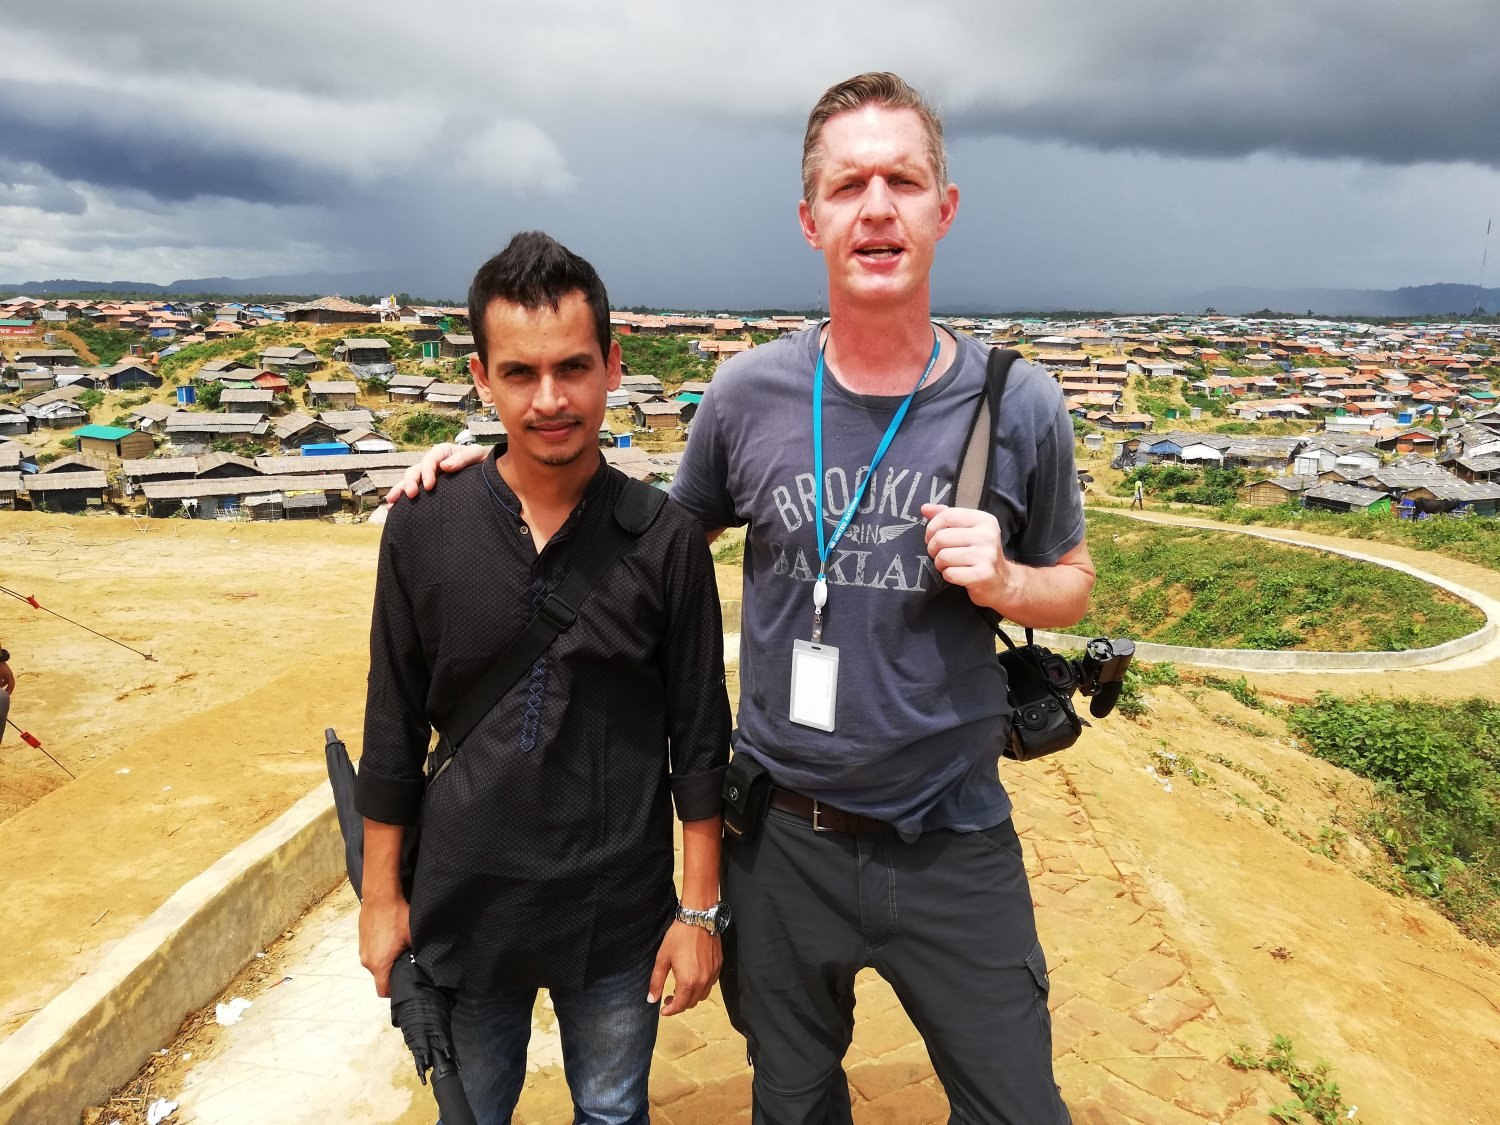 Andrew Berends working with translator Amjad Hossen in the Rohingya refugee camps, Bangladesh, 2018.  Photo: Alastair Lawson-Tancred